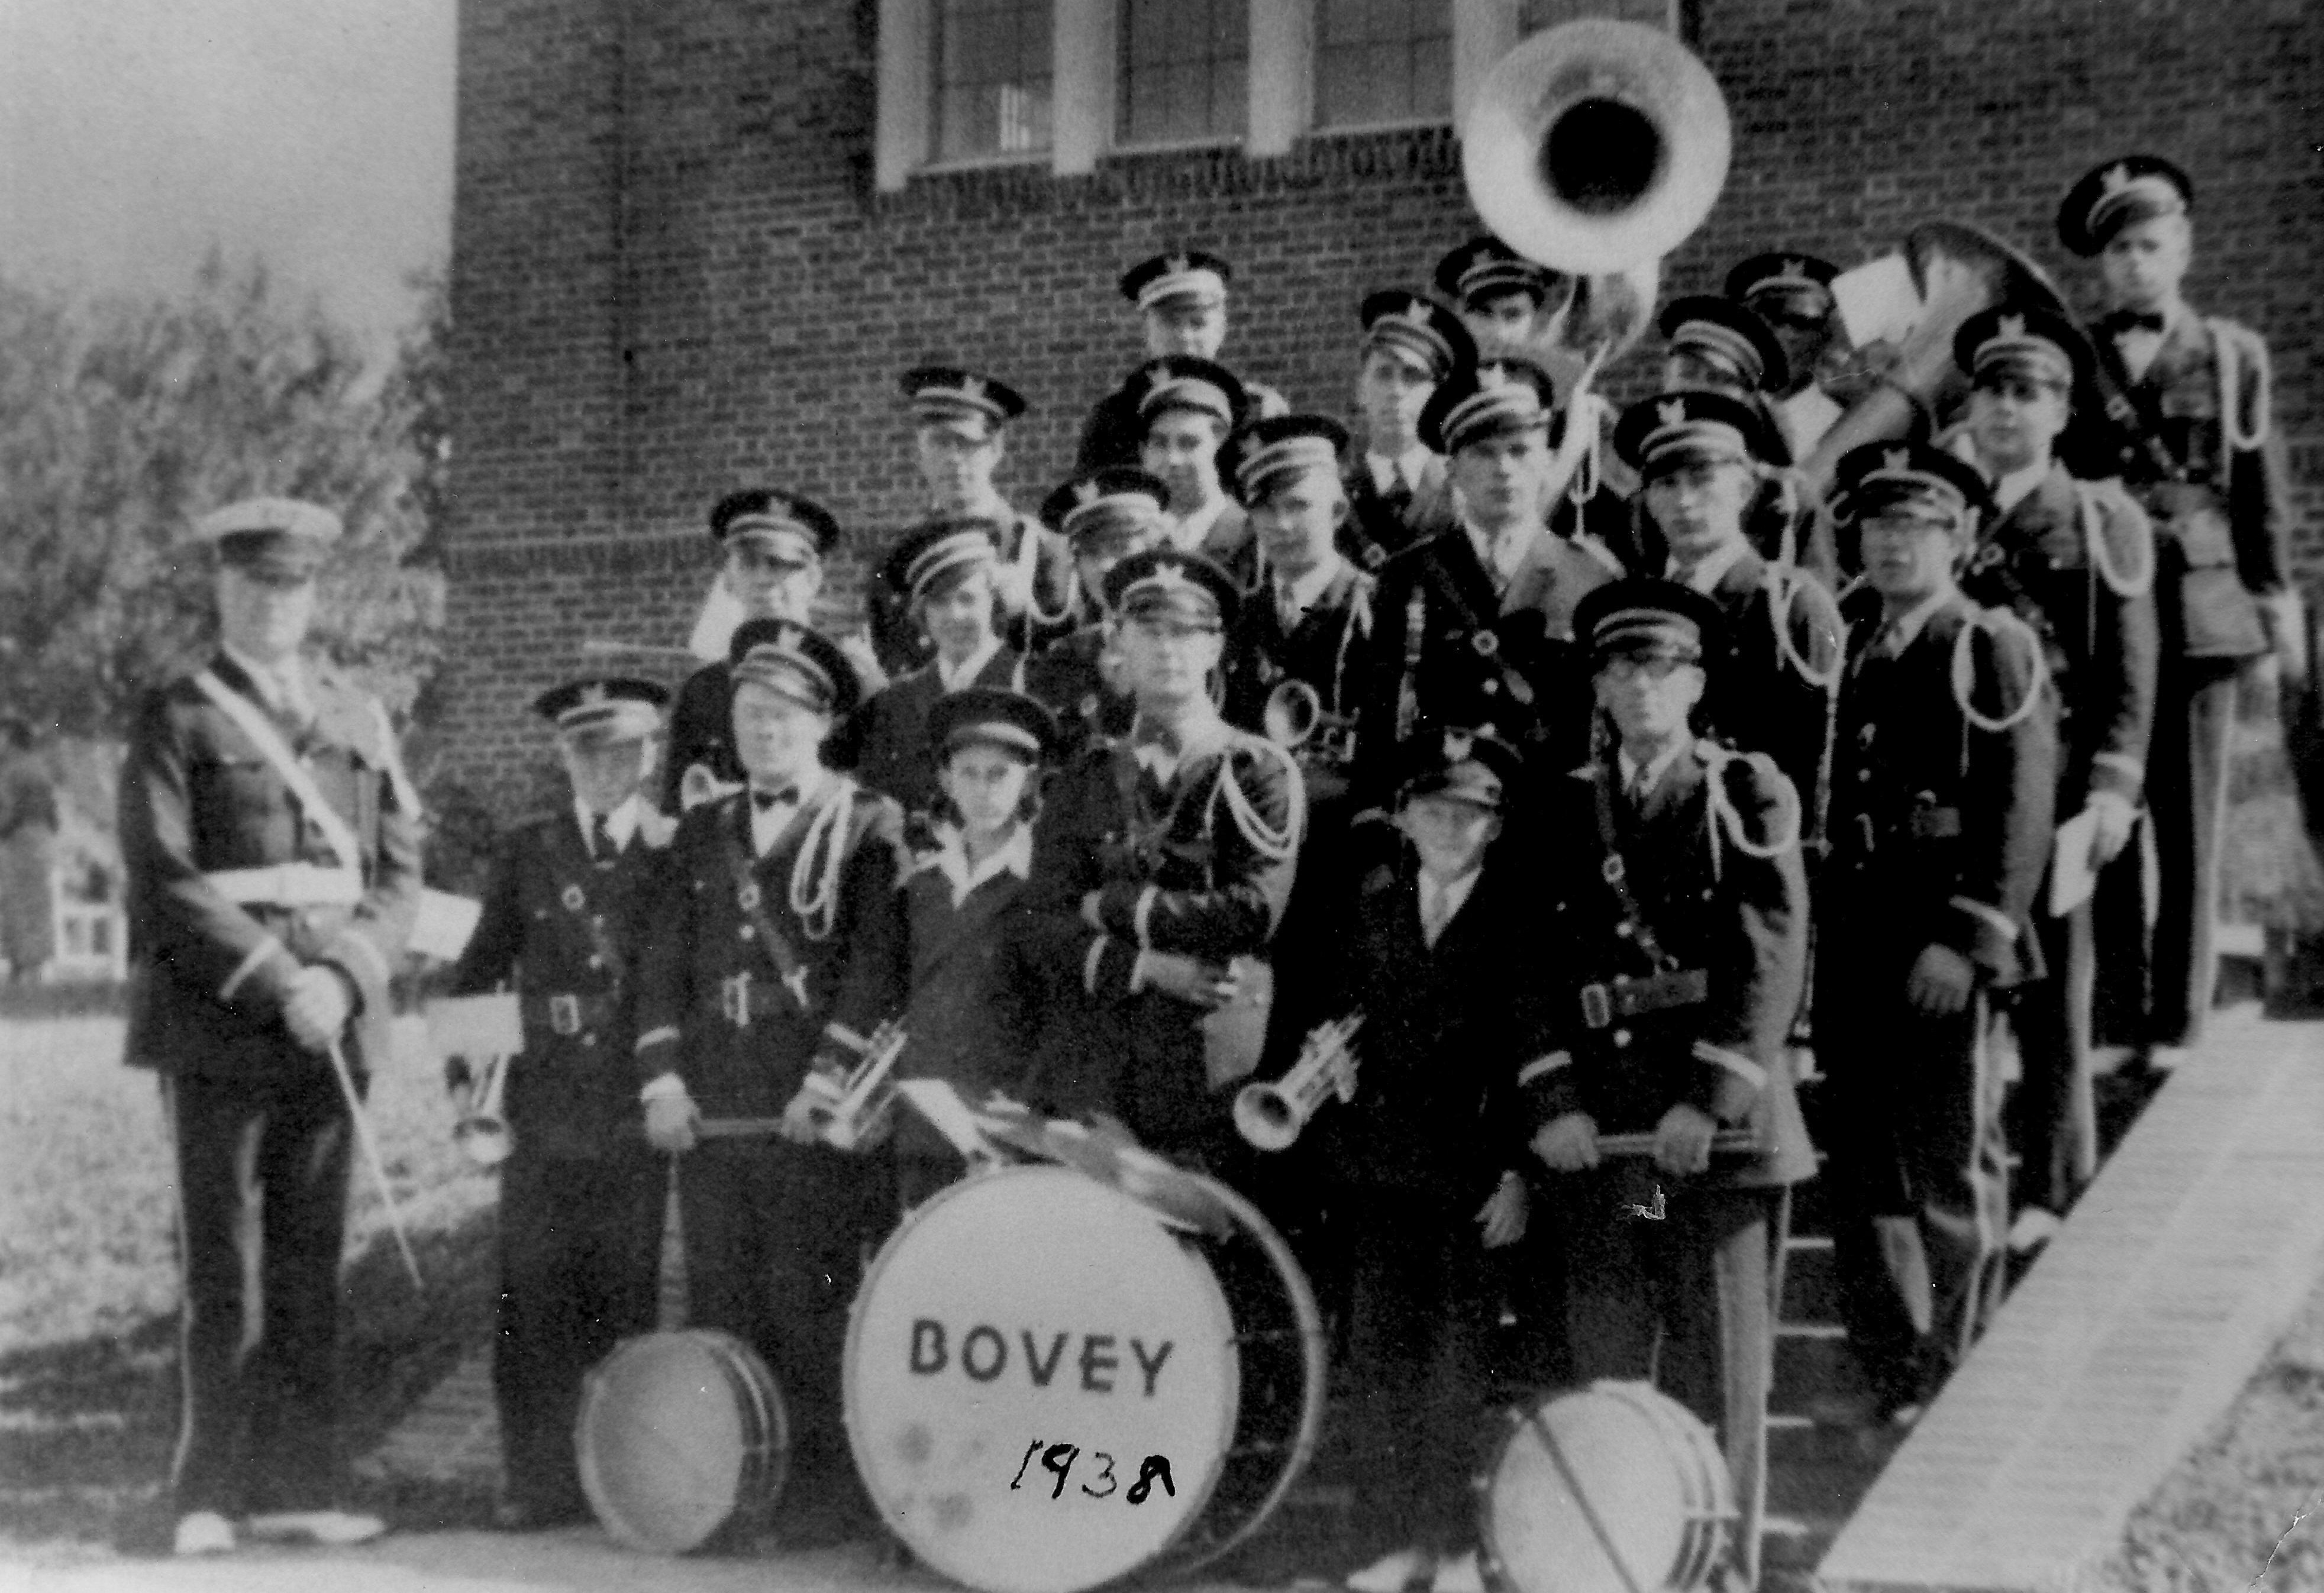 Bovey Band1938